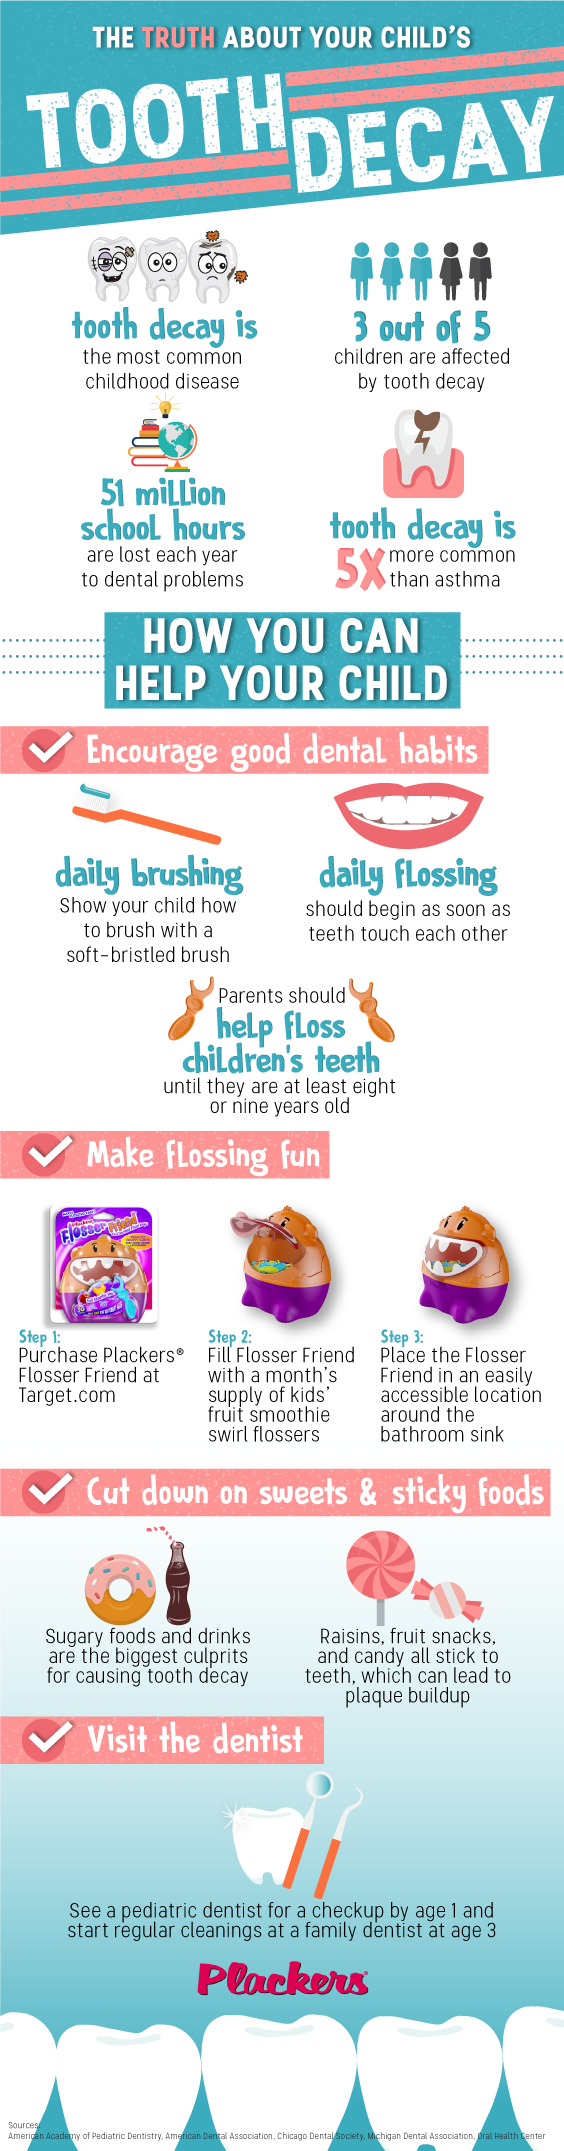 Did you know childhood tooth decay is the number one chronic